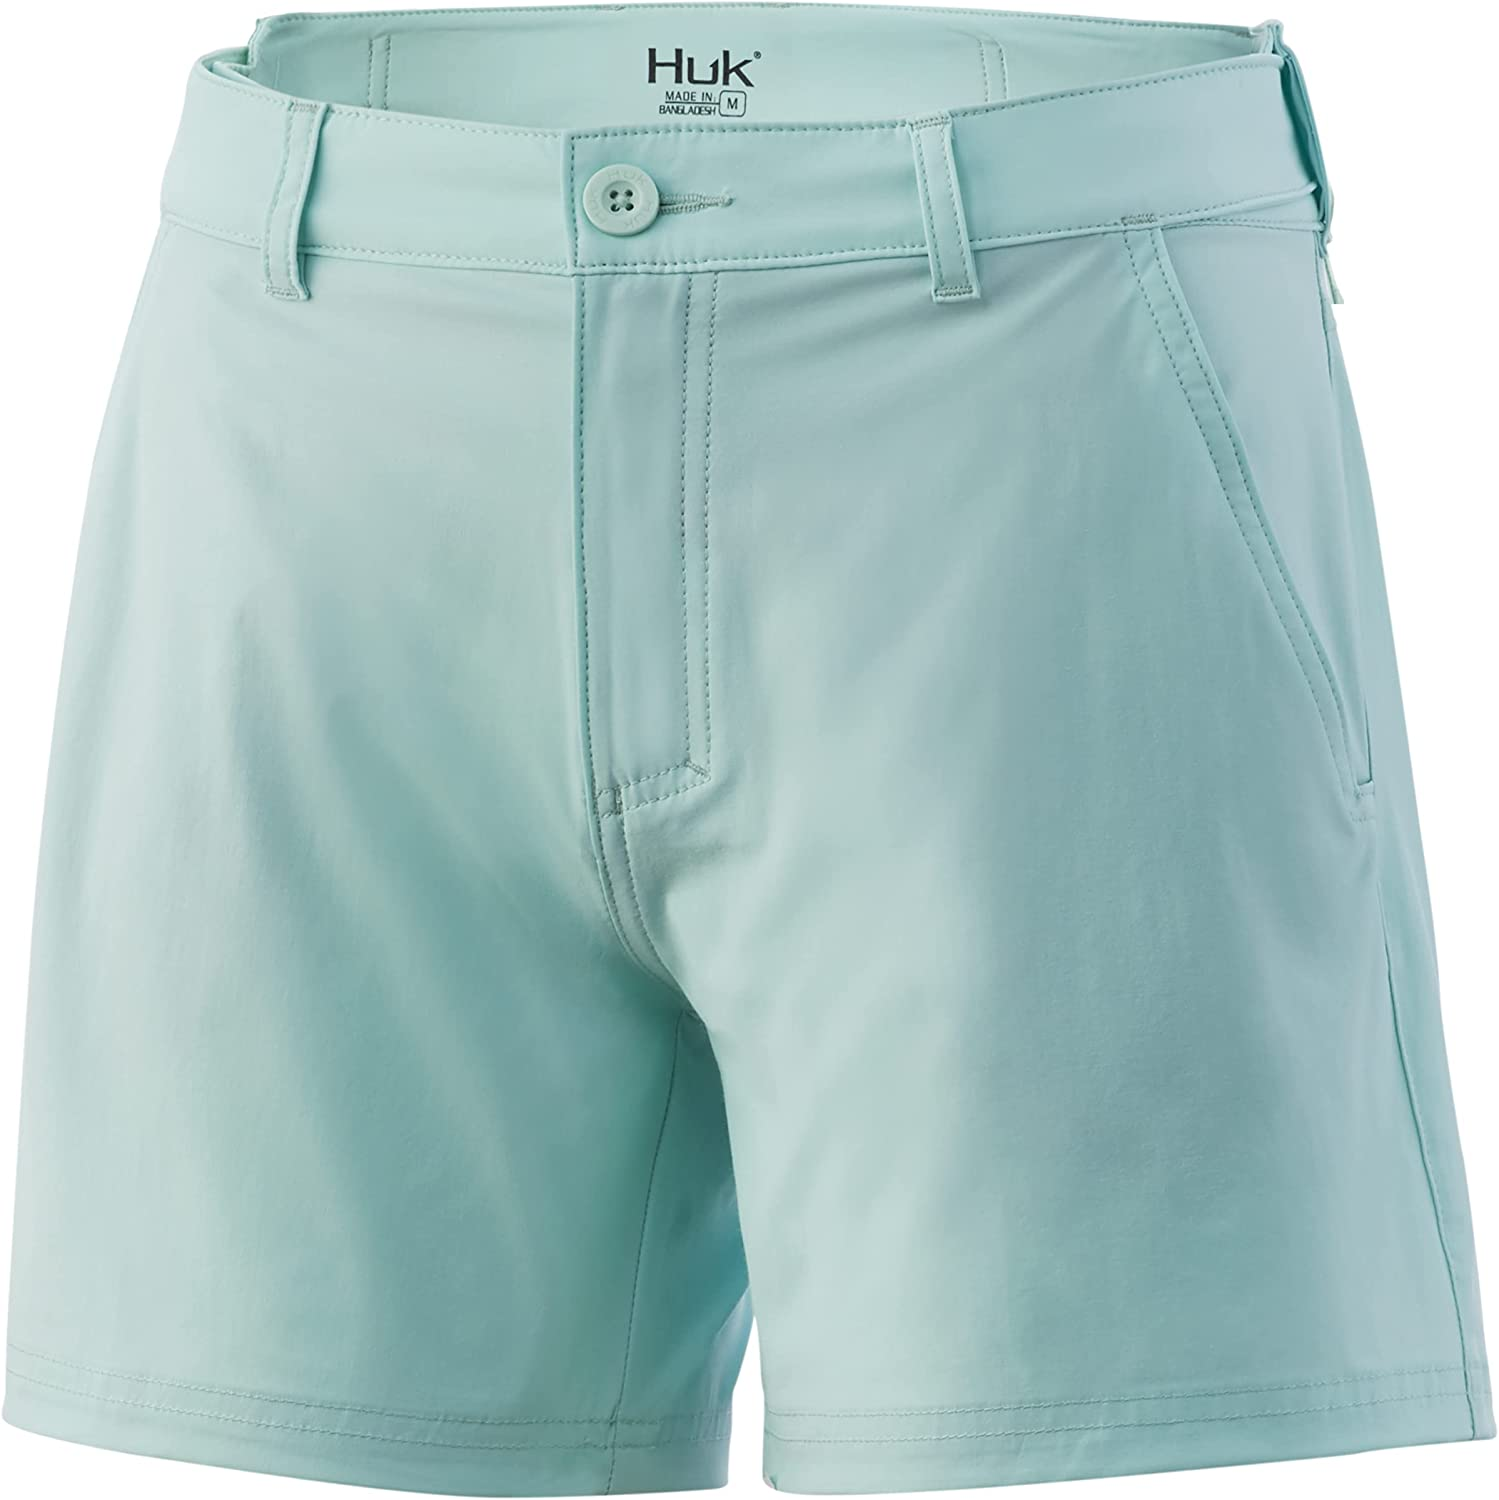 HUK Women's Next Level Performance Finally resale start Shorts Quick-Drying Cheap super special price